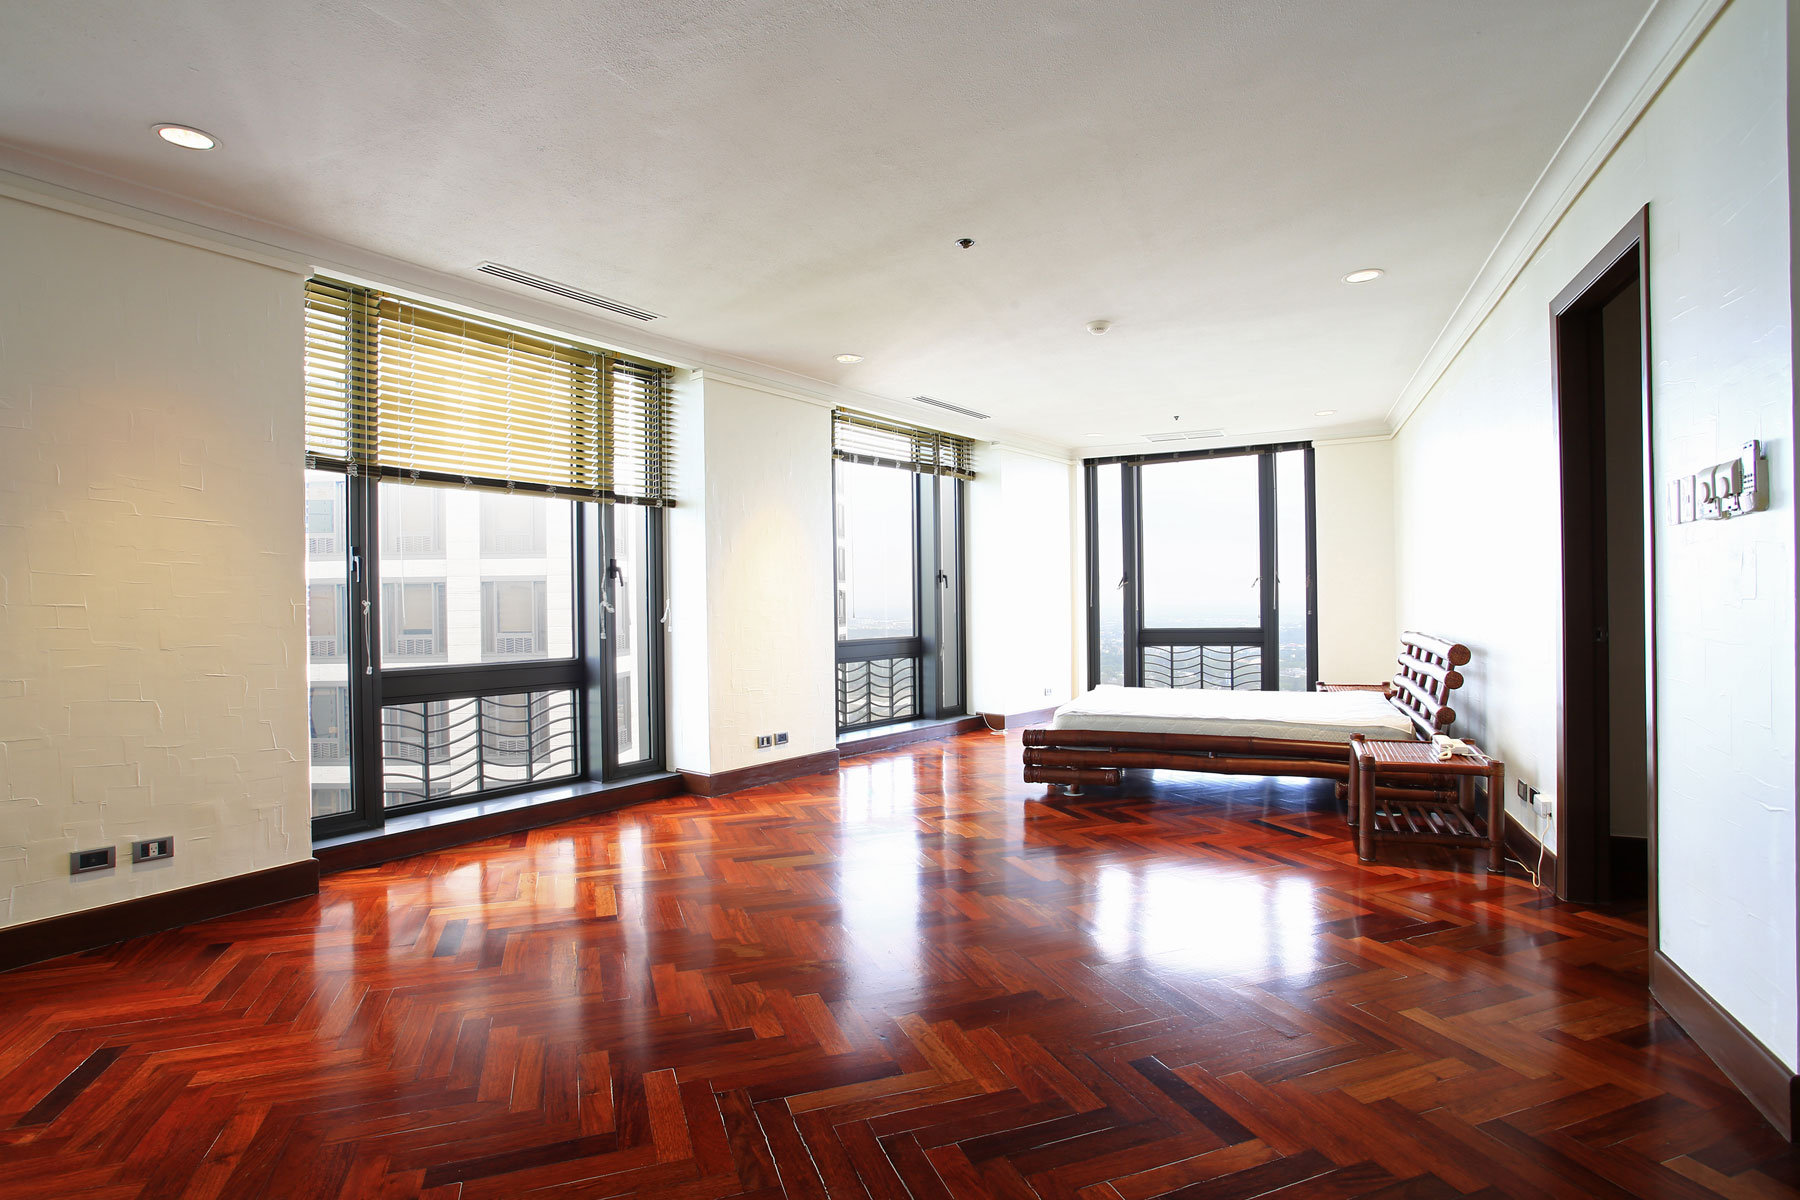 コンドミニアム のために 売買 アット Custom Built Grand 4 Bedroom Apartment Essensa 21st Drive corner 5th Ave. Taguig, Luzon 1634 フィリピン